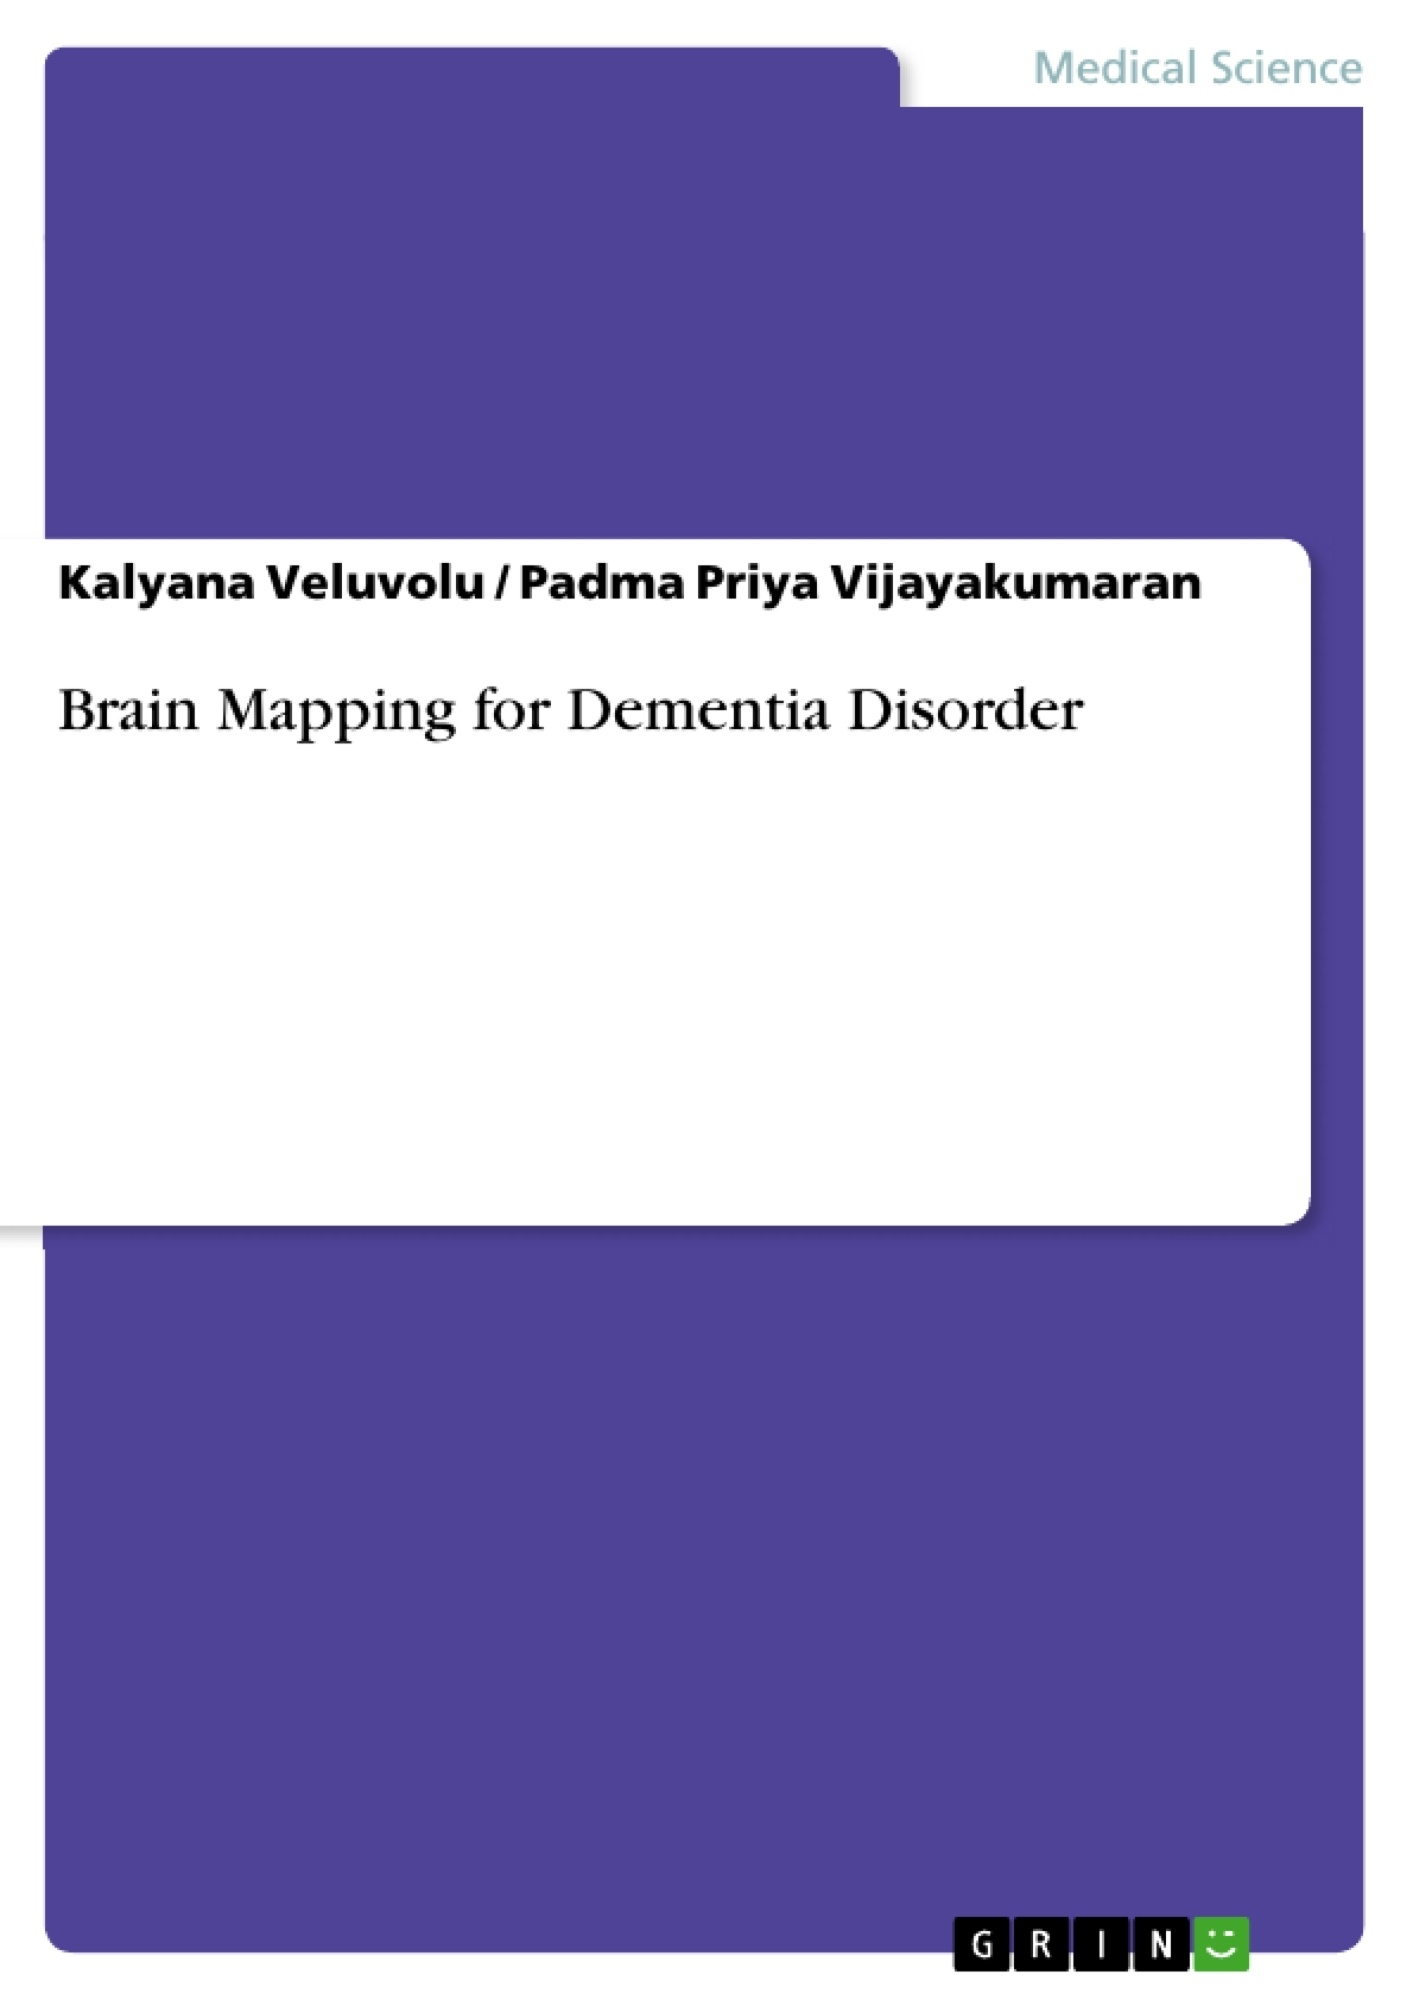 Title: Brain Mapping for Dementia Disorder